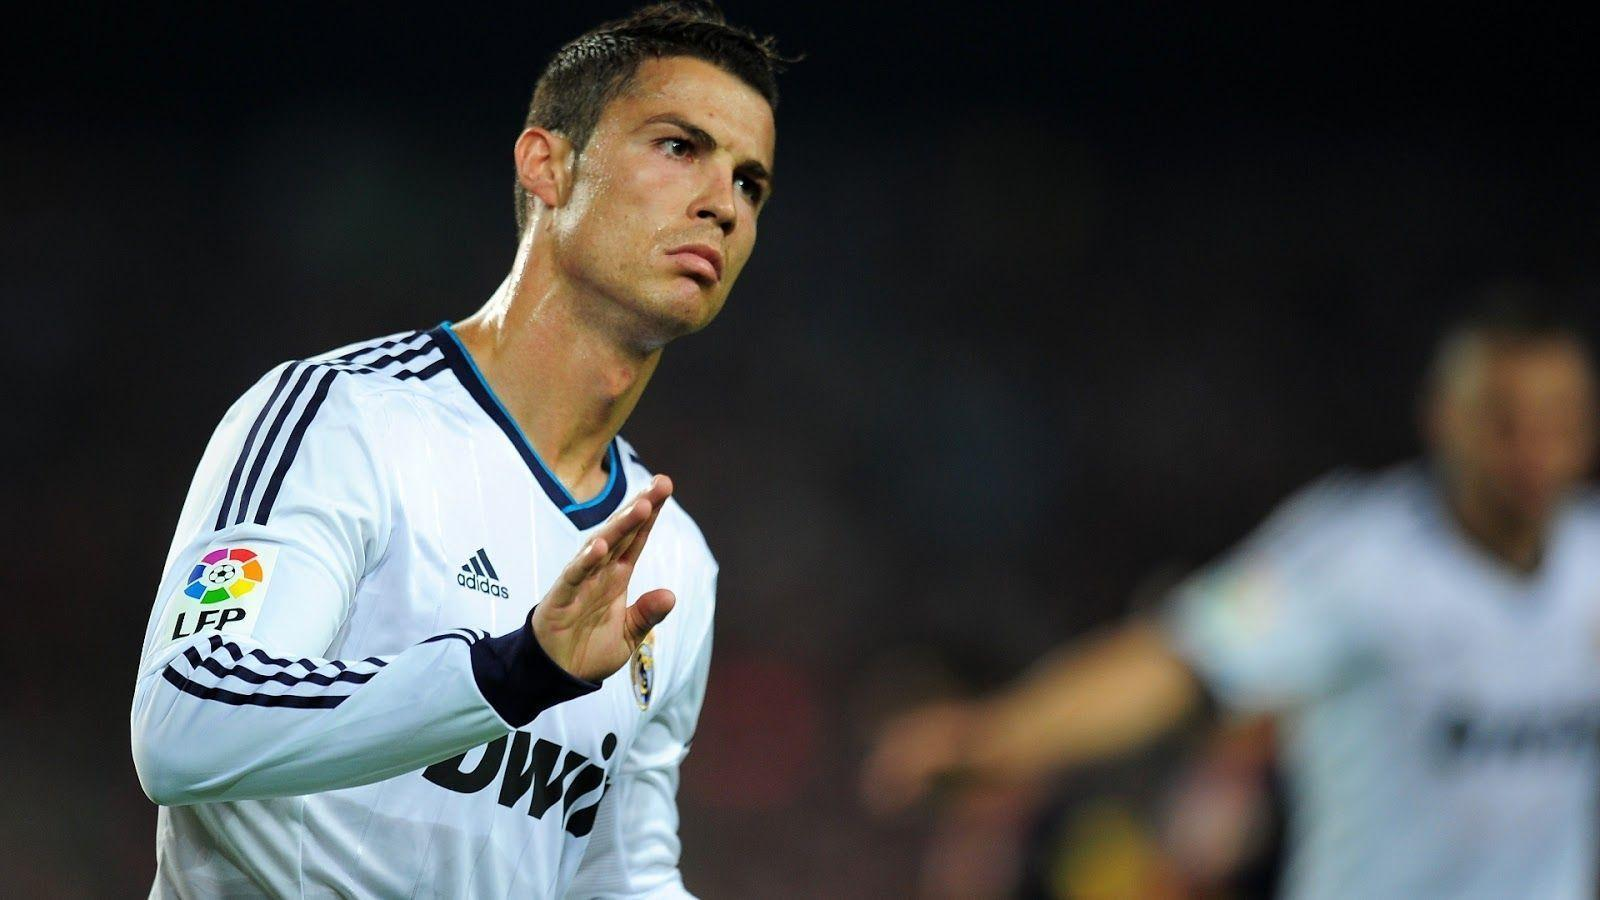 Cristiano Ronaldo Hd Wallpapers and Background